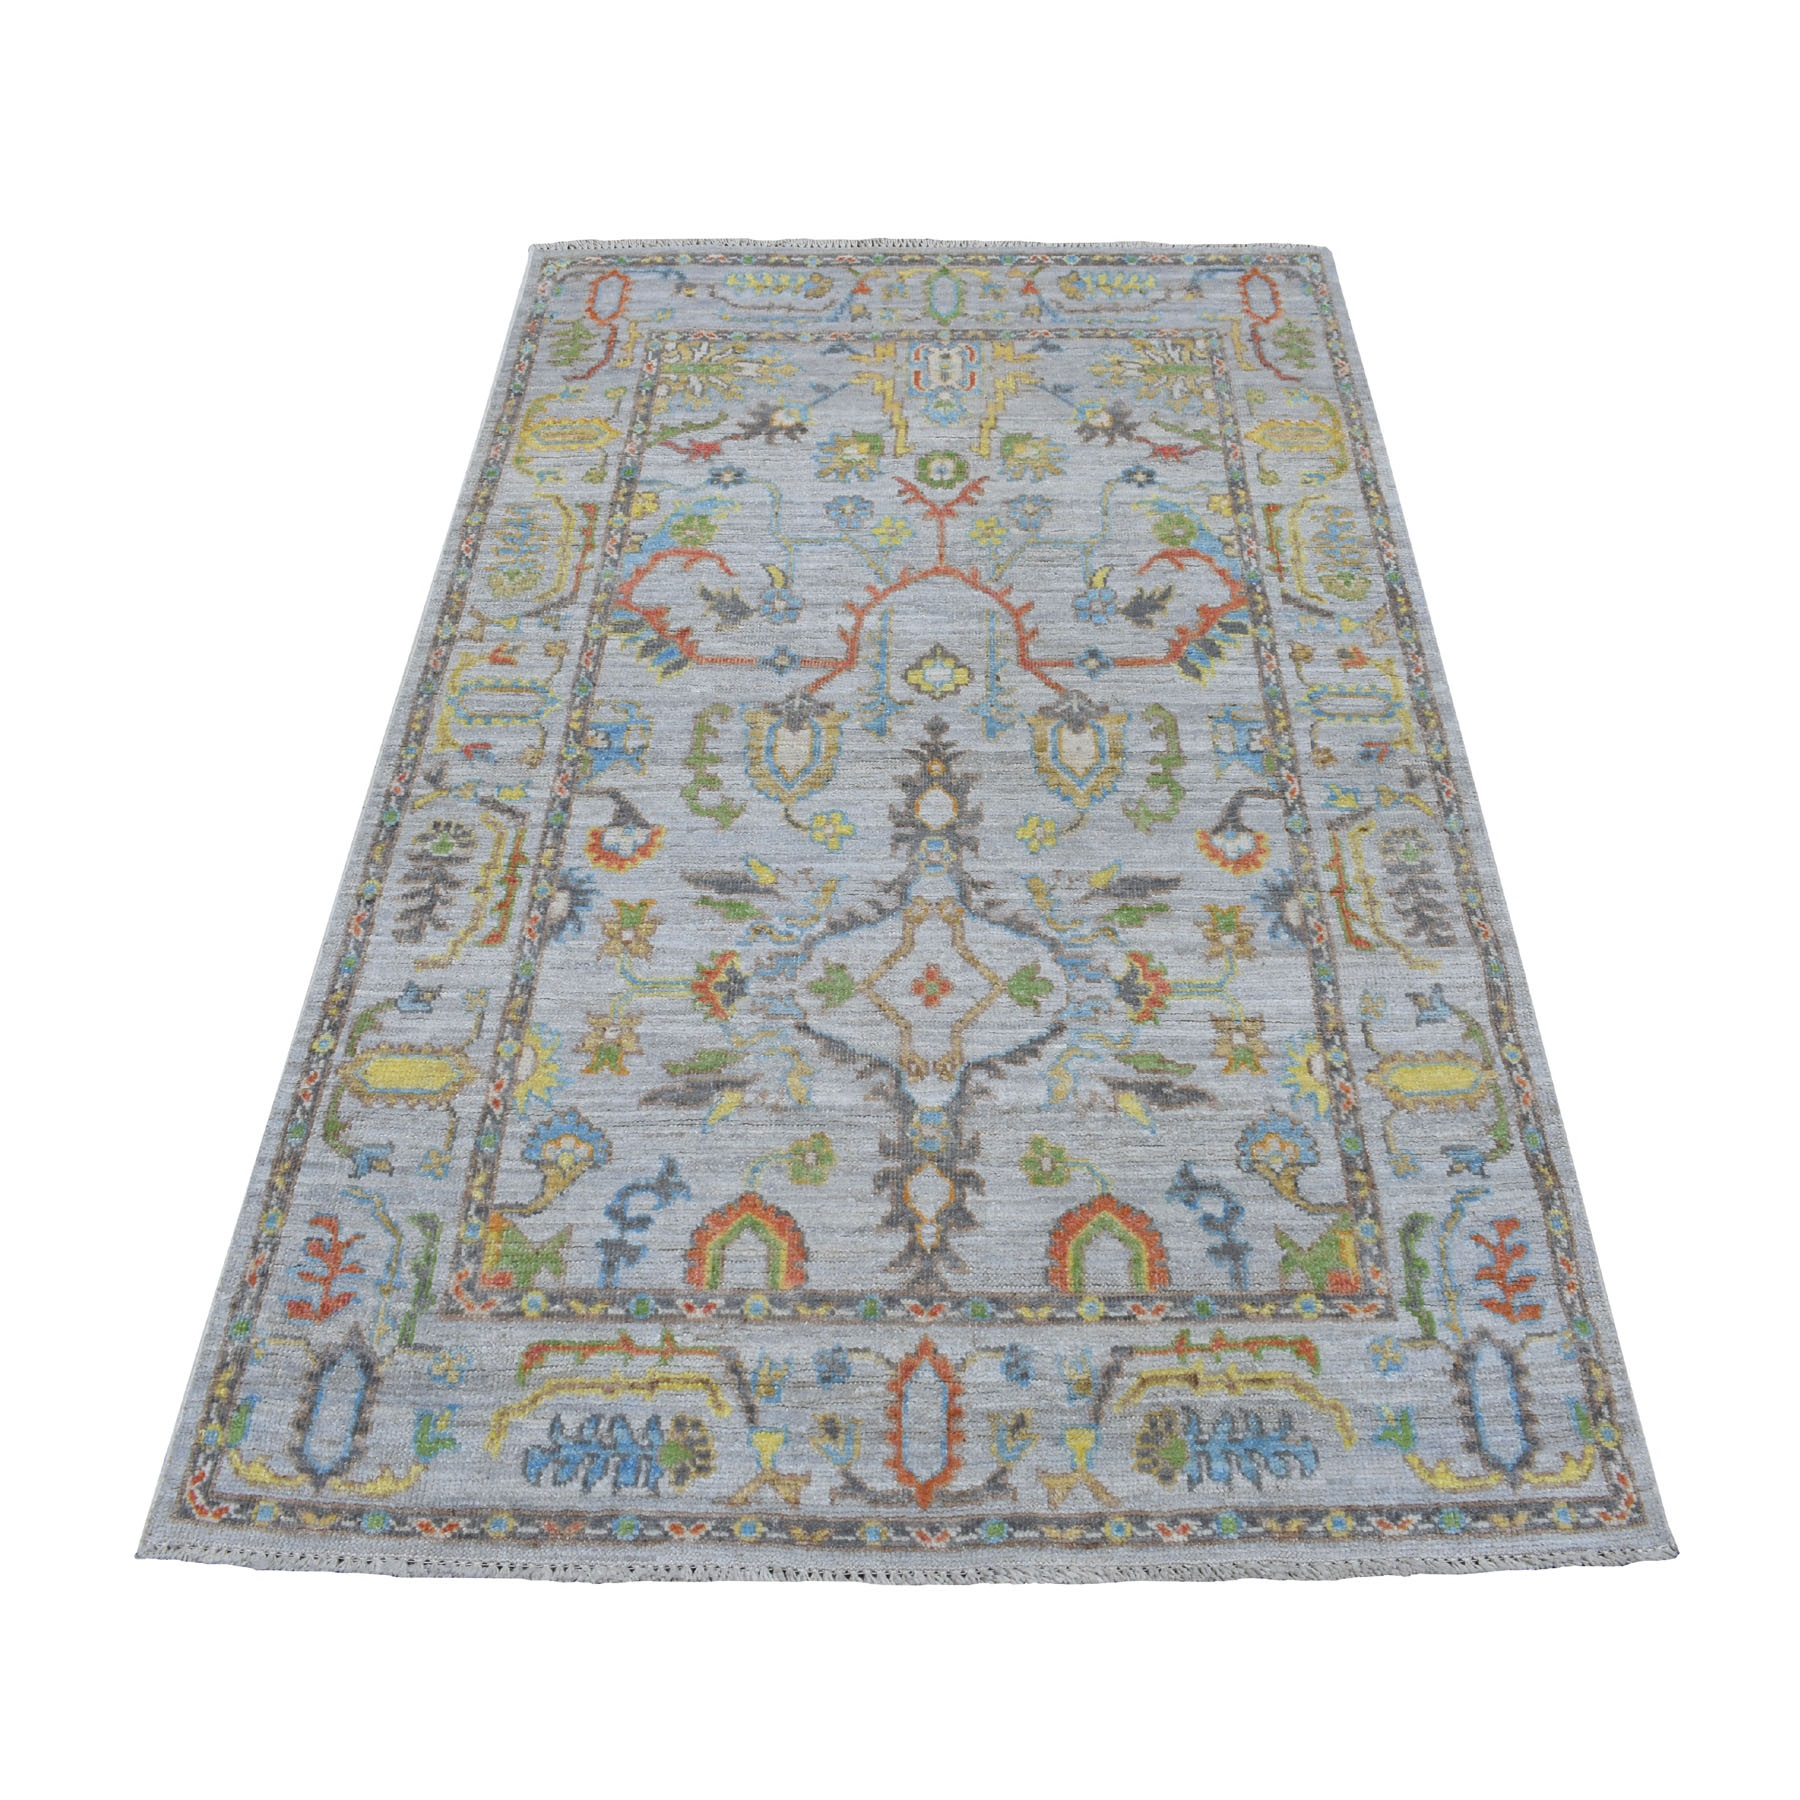 4'x6' Gray Angora Oushak With Soft Velvety wool Hand Knotted Oriental Rug